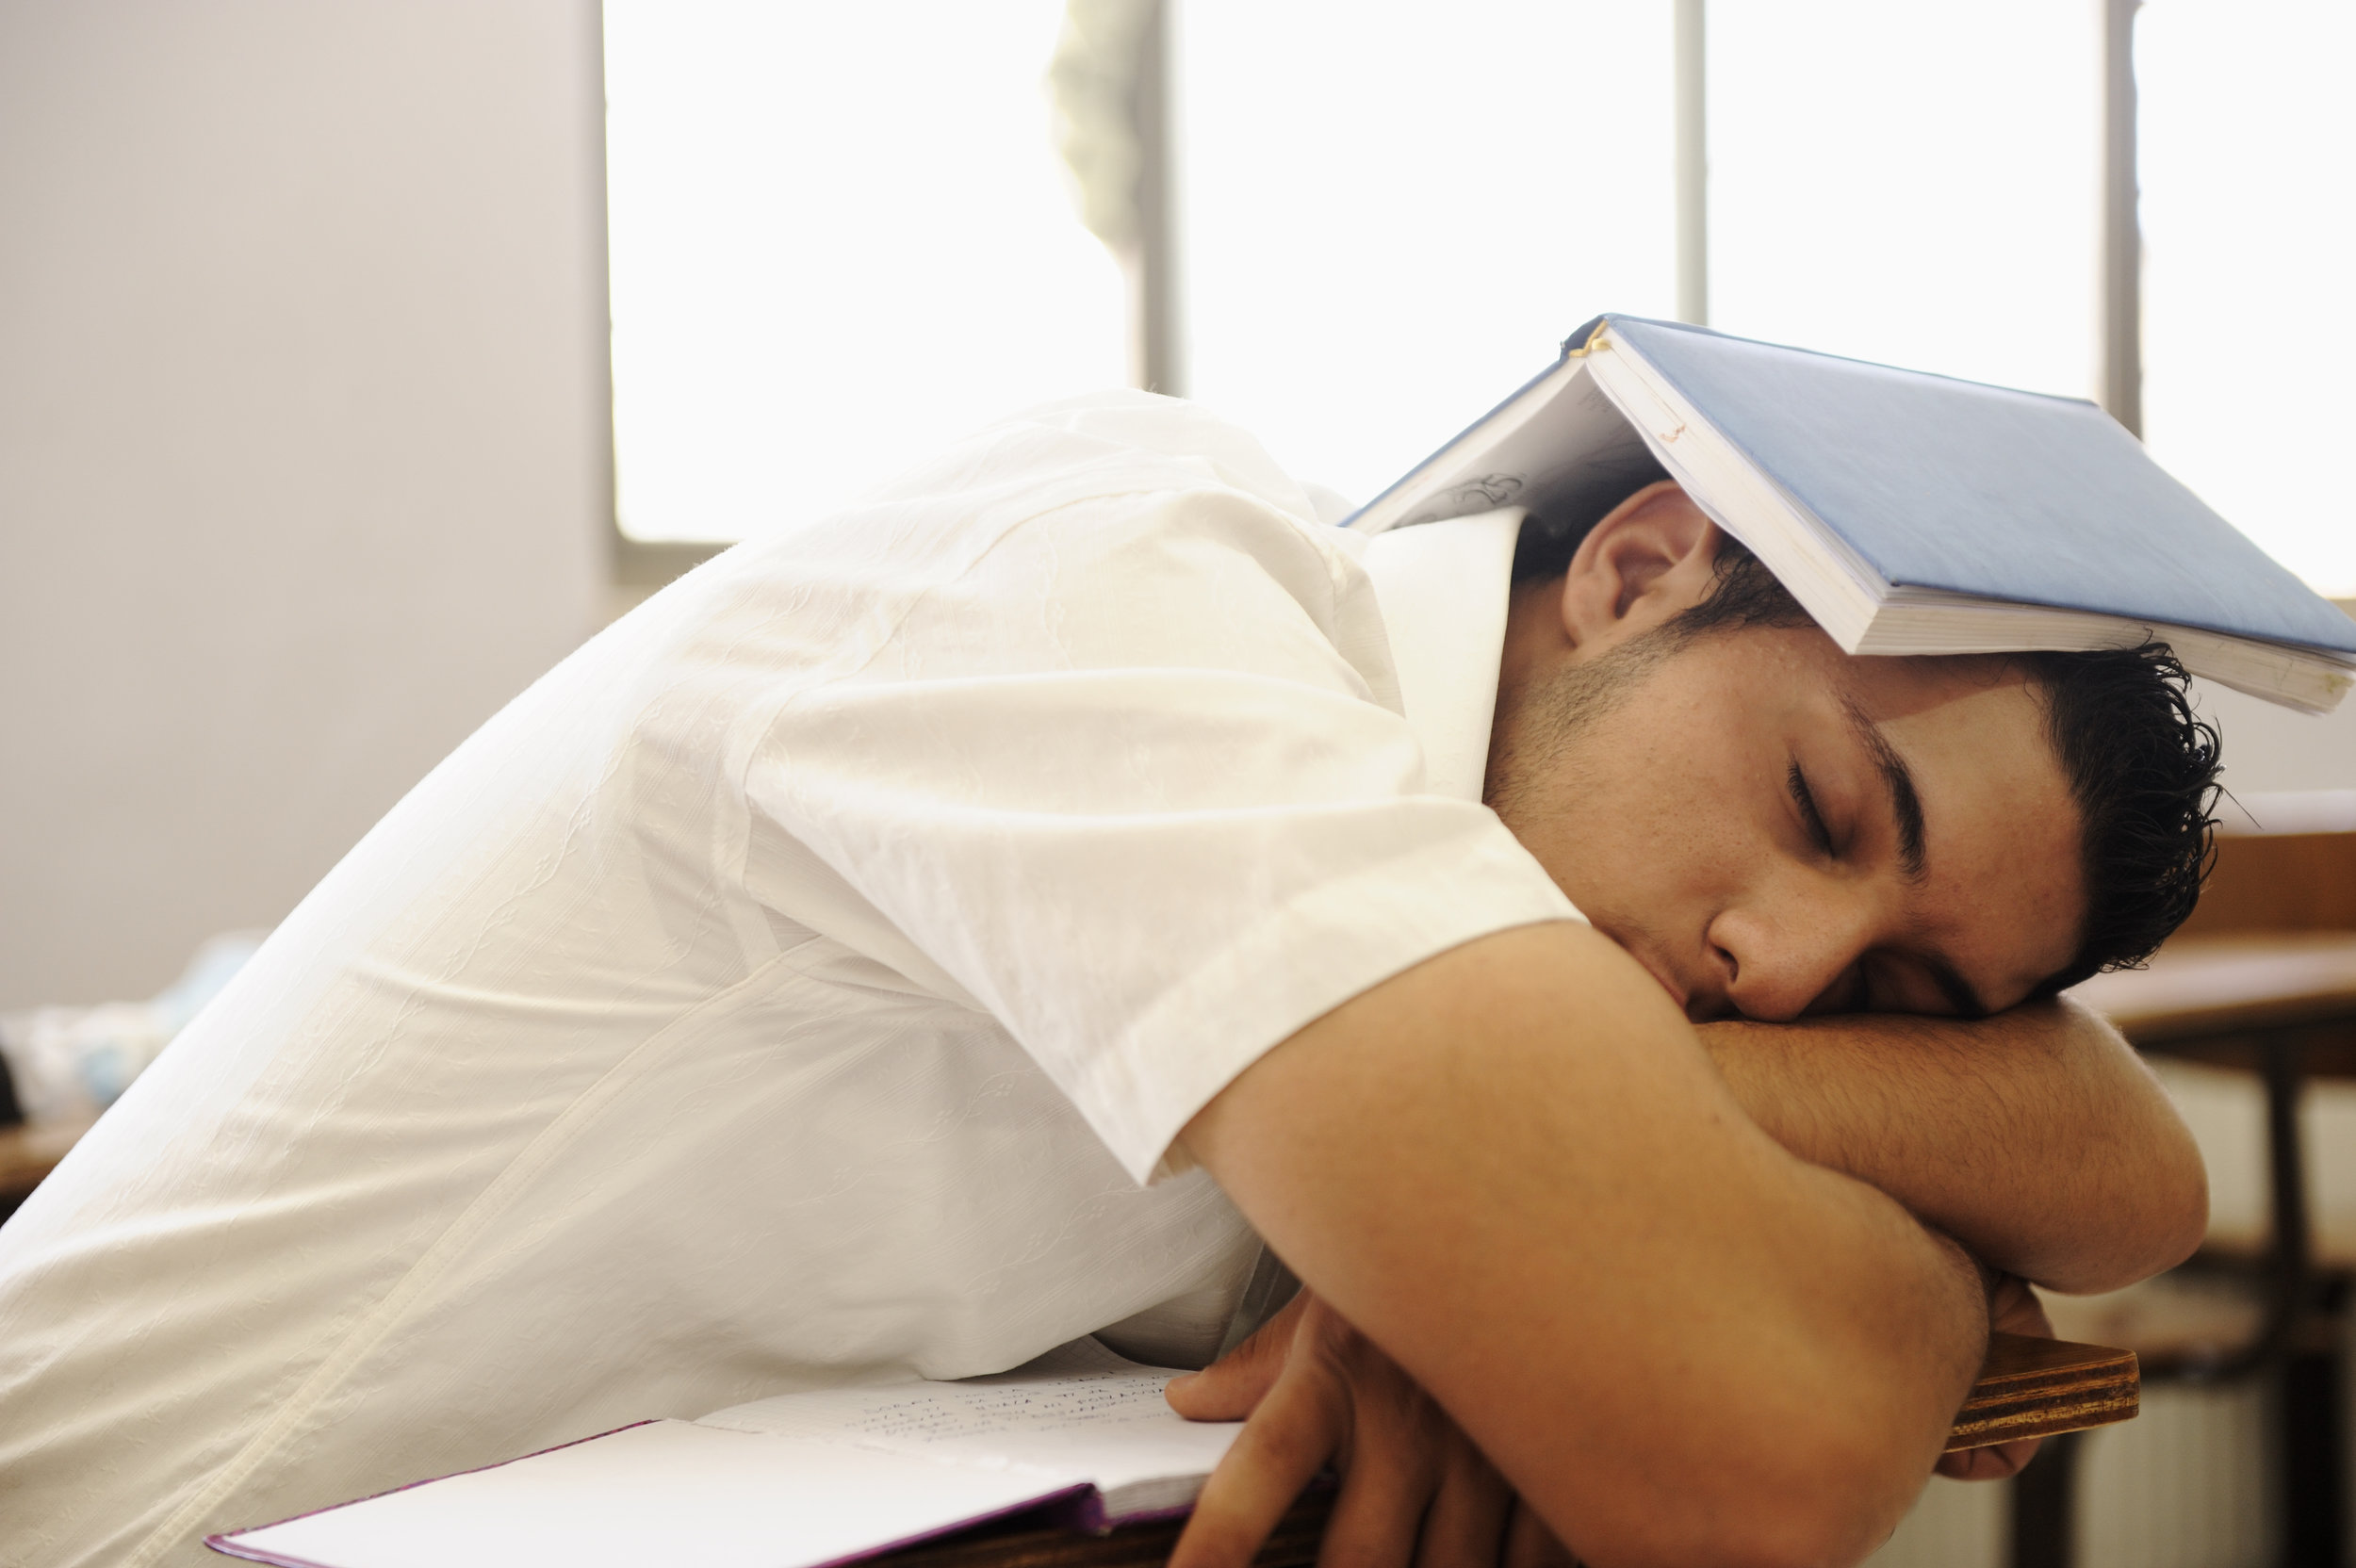 teen-student-sleeping-at-classroom_rtlbYqspHj.jpg